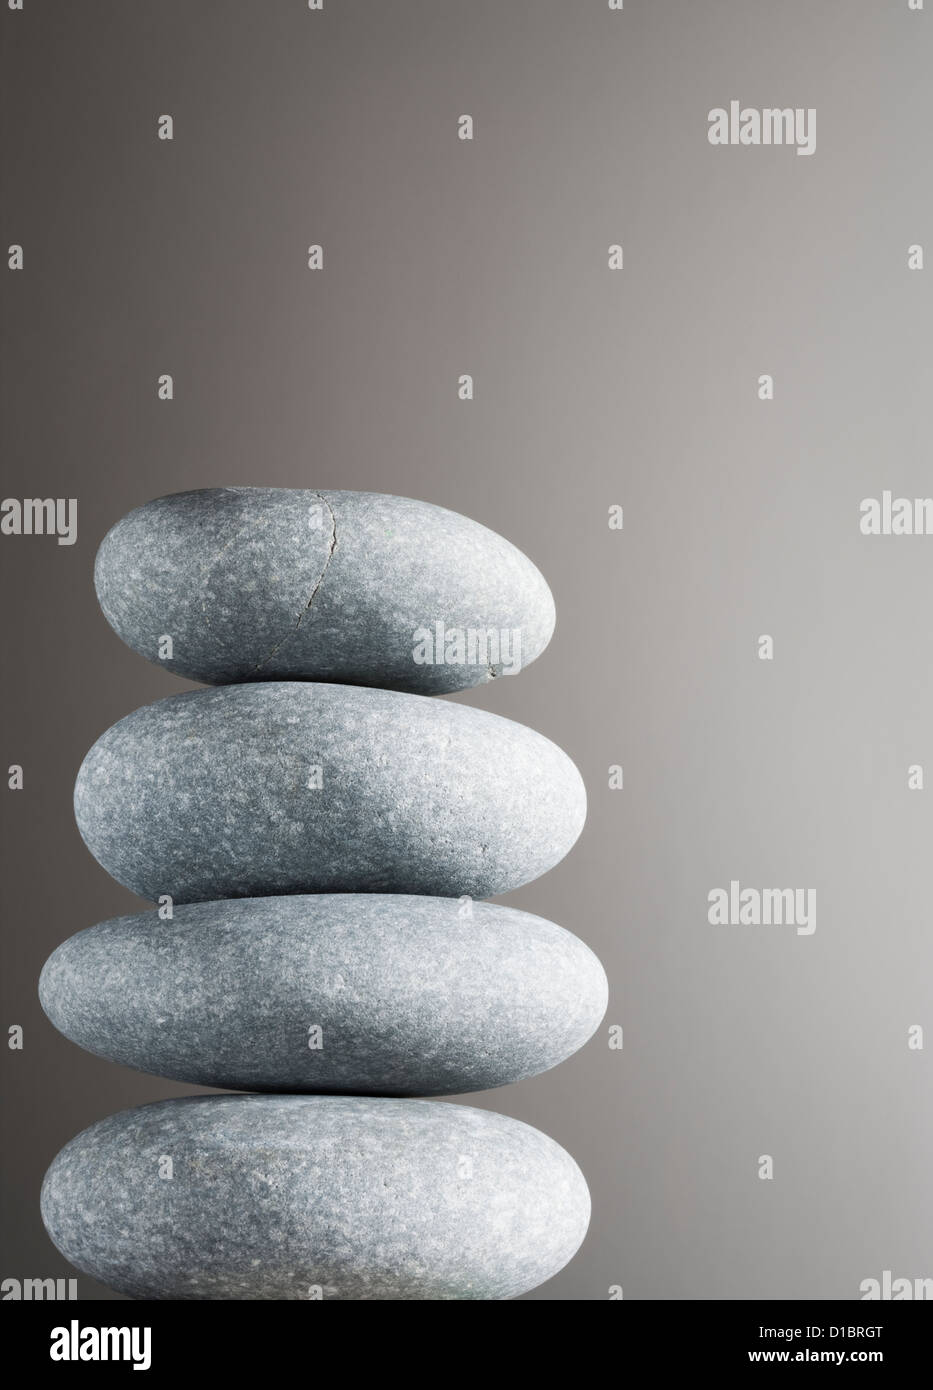 Pile of pebbles. - Stock Image